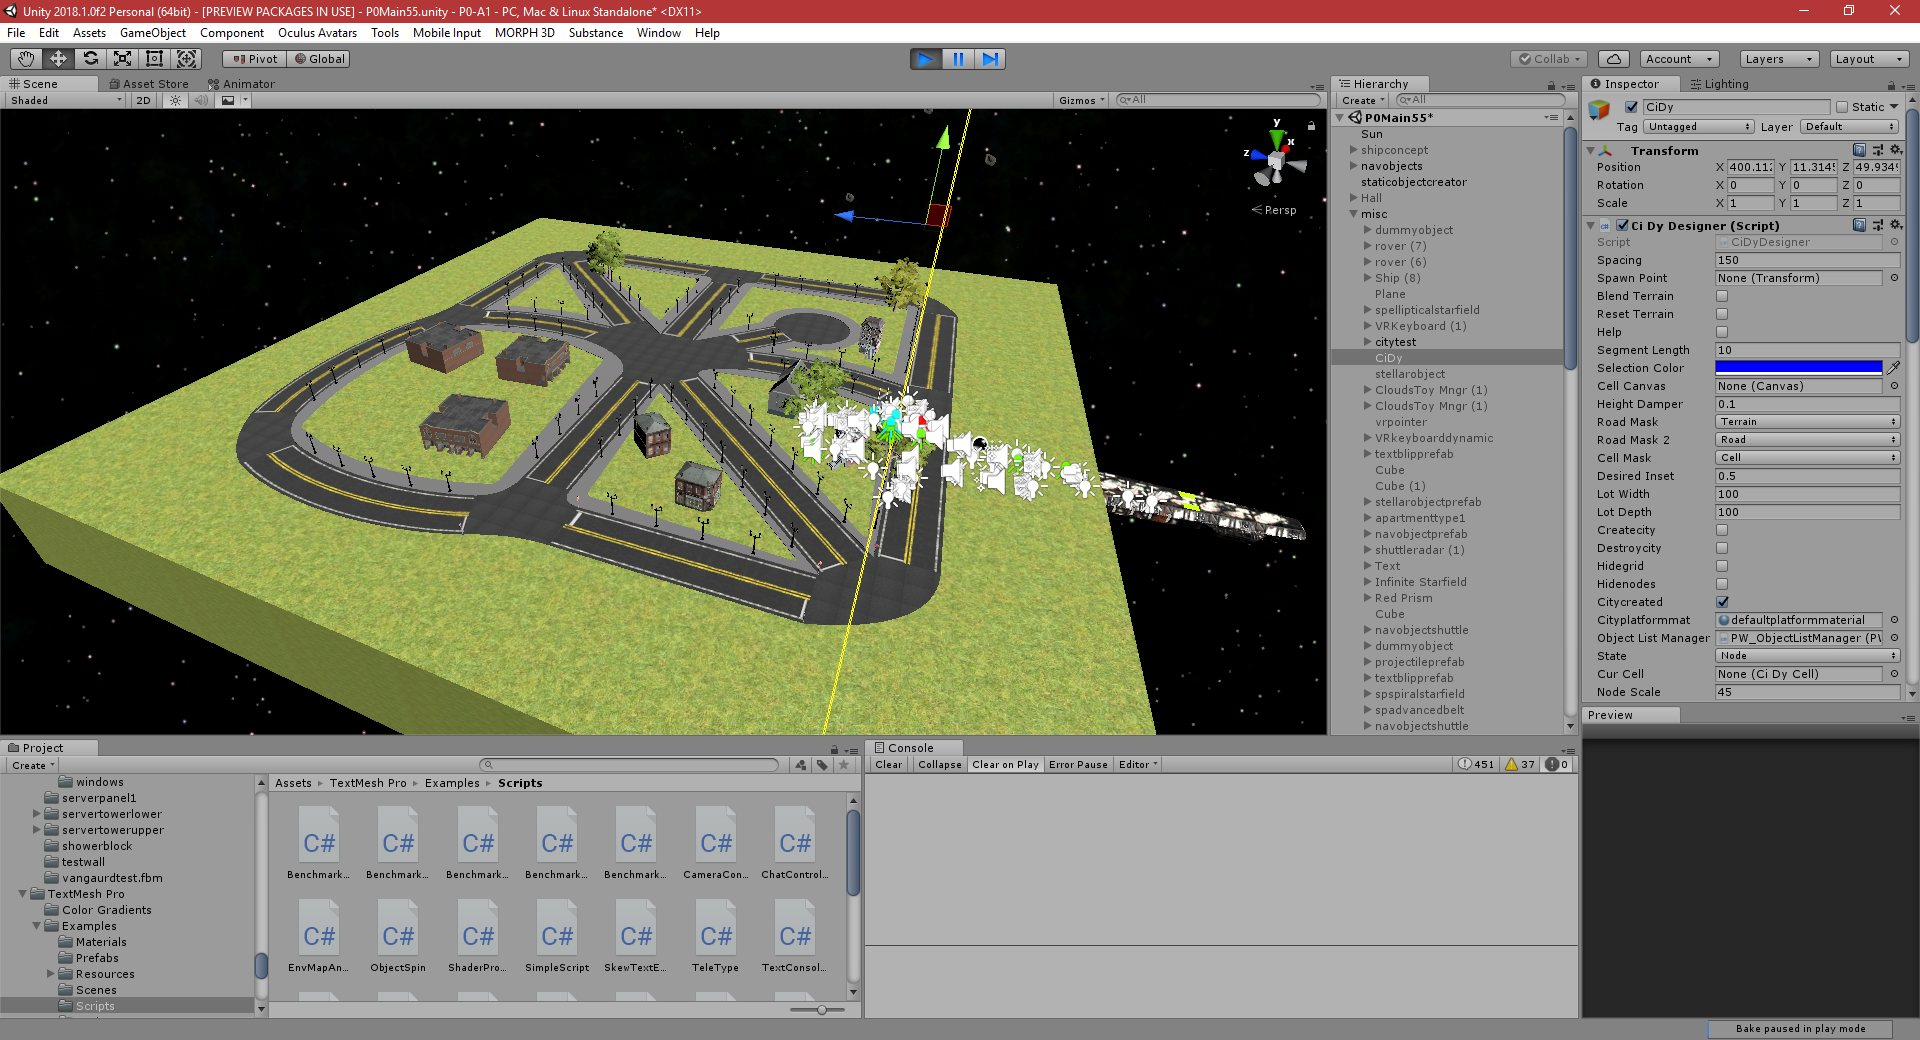 P0-A2: Part 441: Unity 2018 2 Port - PGD Home